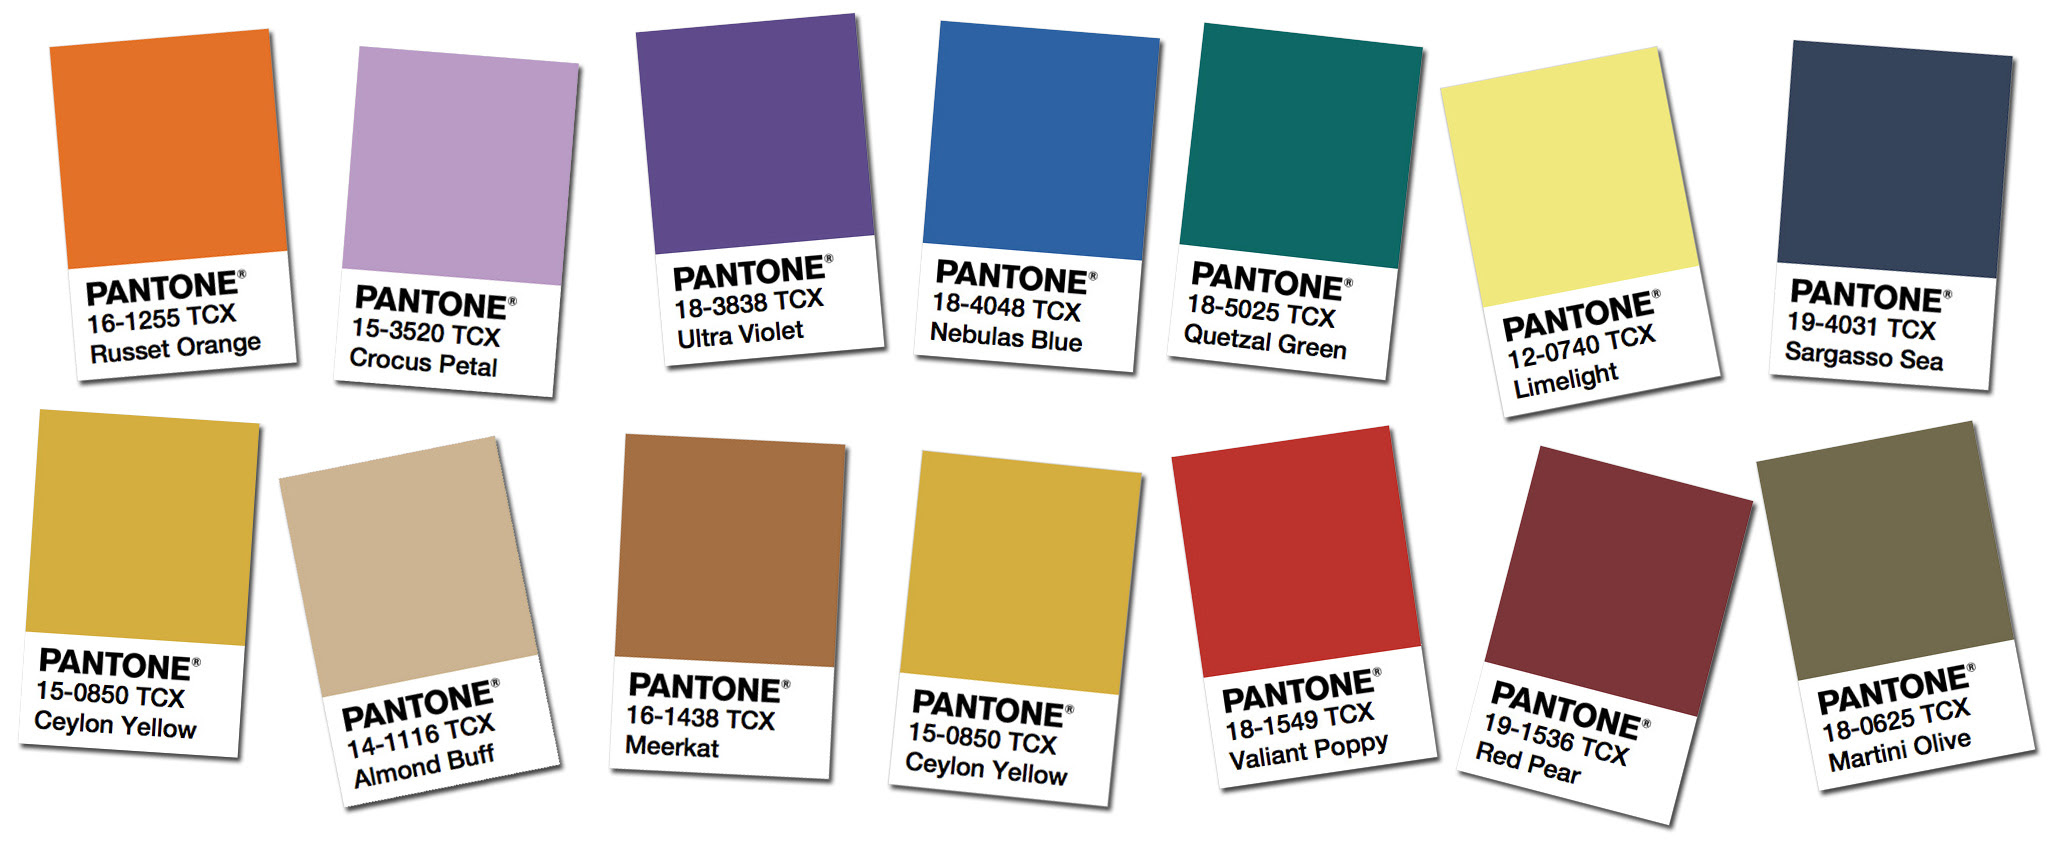 Pantone's Fall/Winter 2018